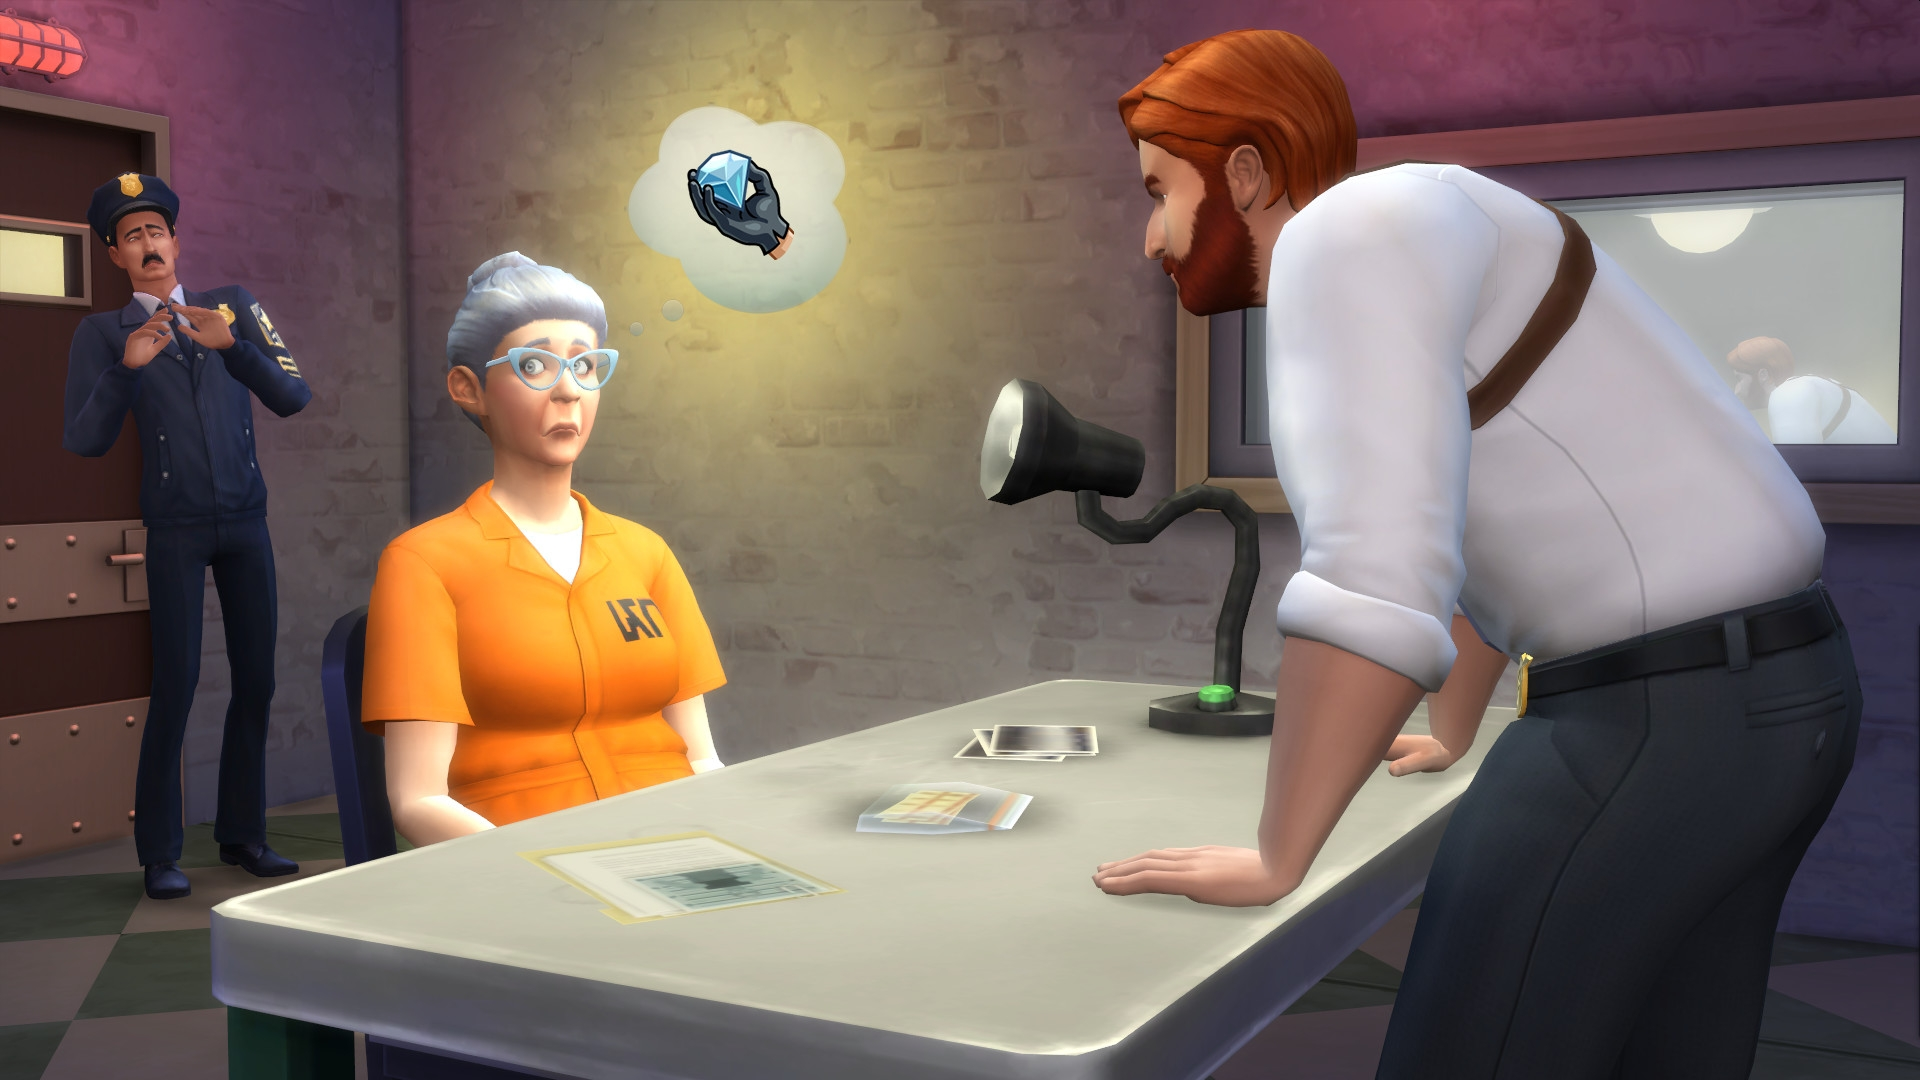 The Sims 4 Excessive Crashing Patch Now Available For PC And Consoles